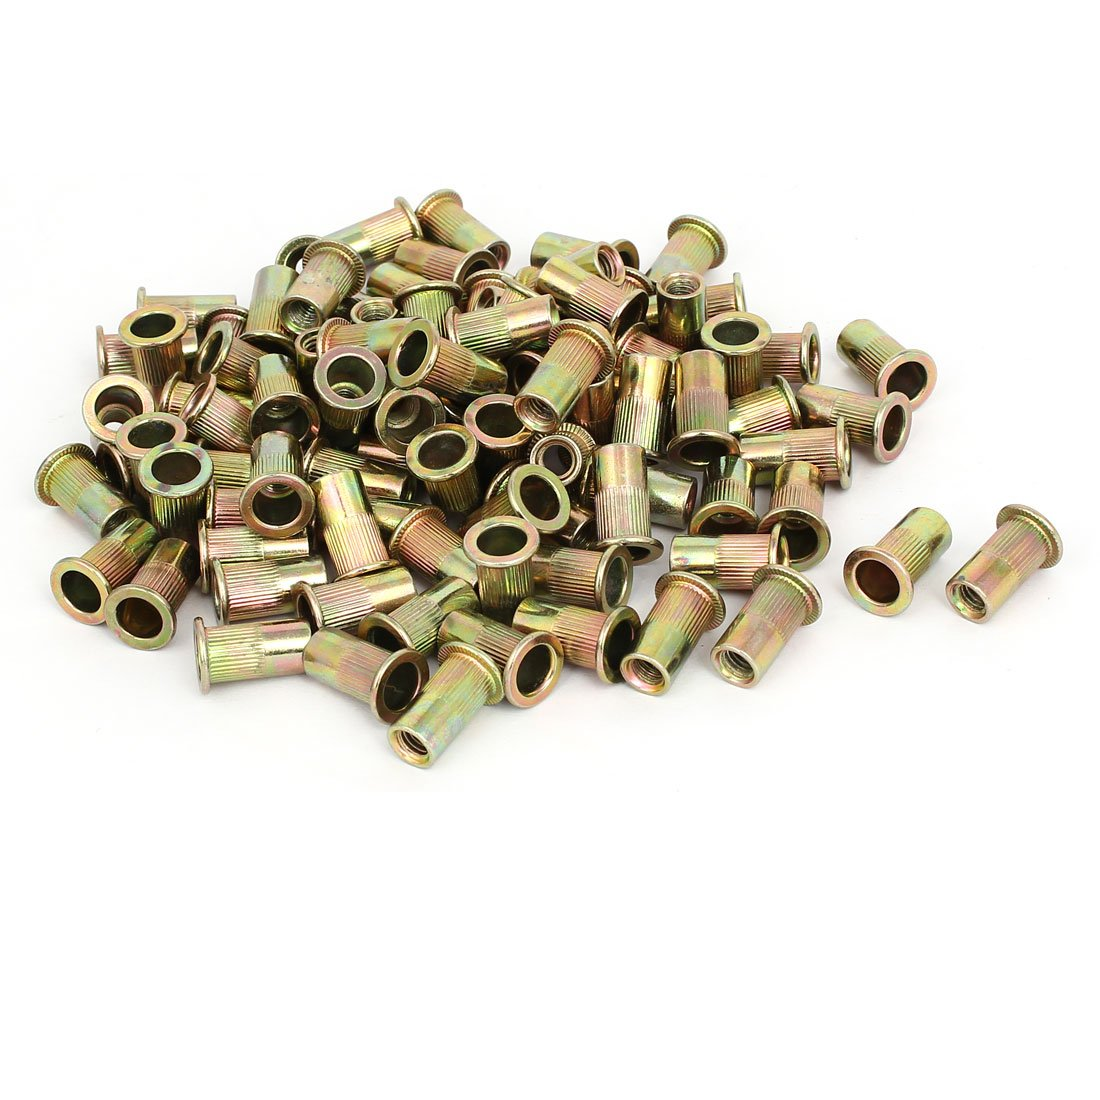 uxcell M6x18mm Metal Zinc Plated Straight Knurled Rivet Nut Insert Bronze Tone 130pcs